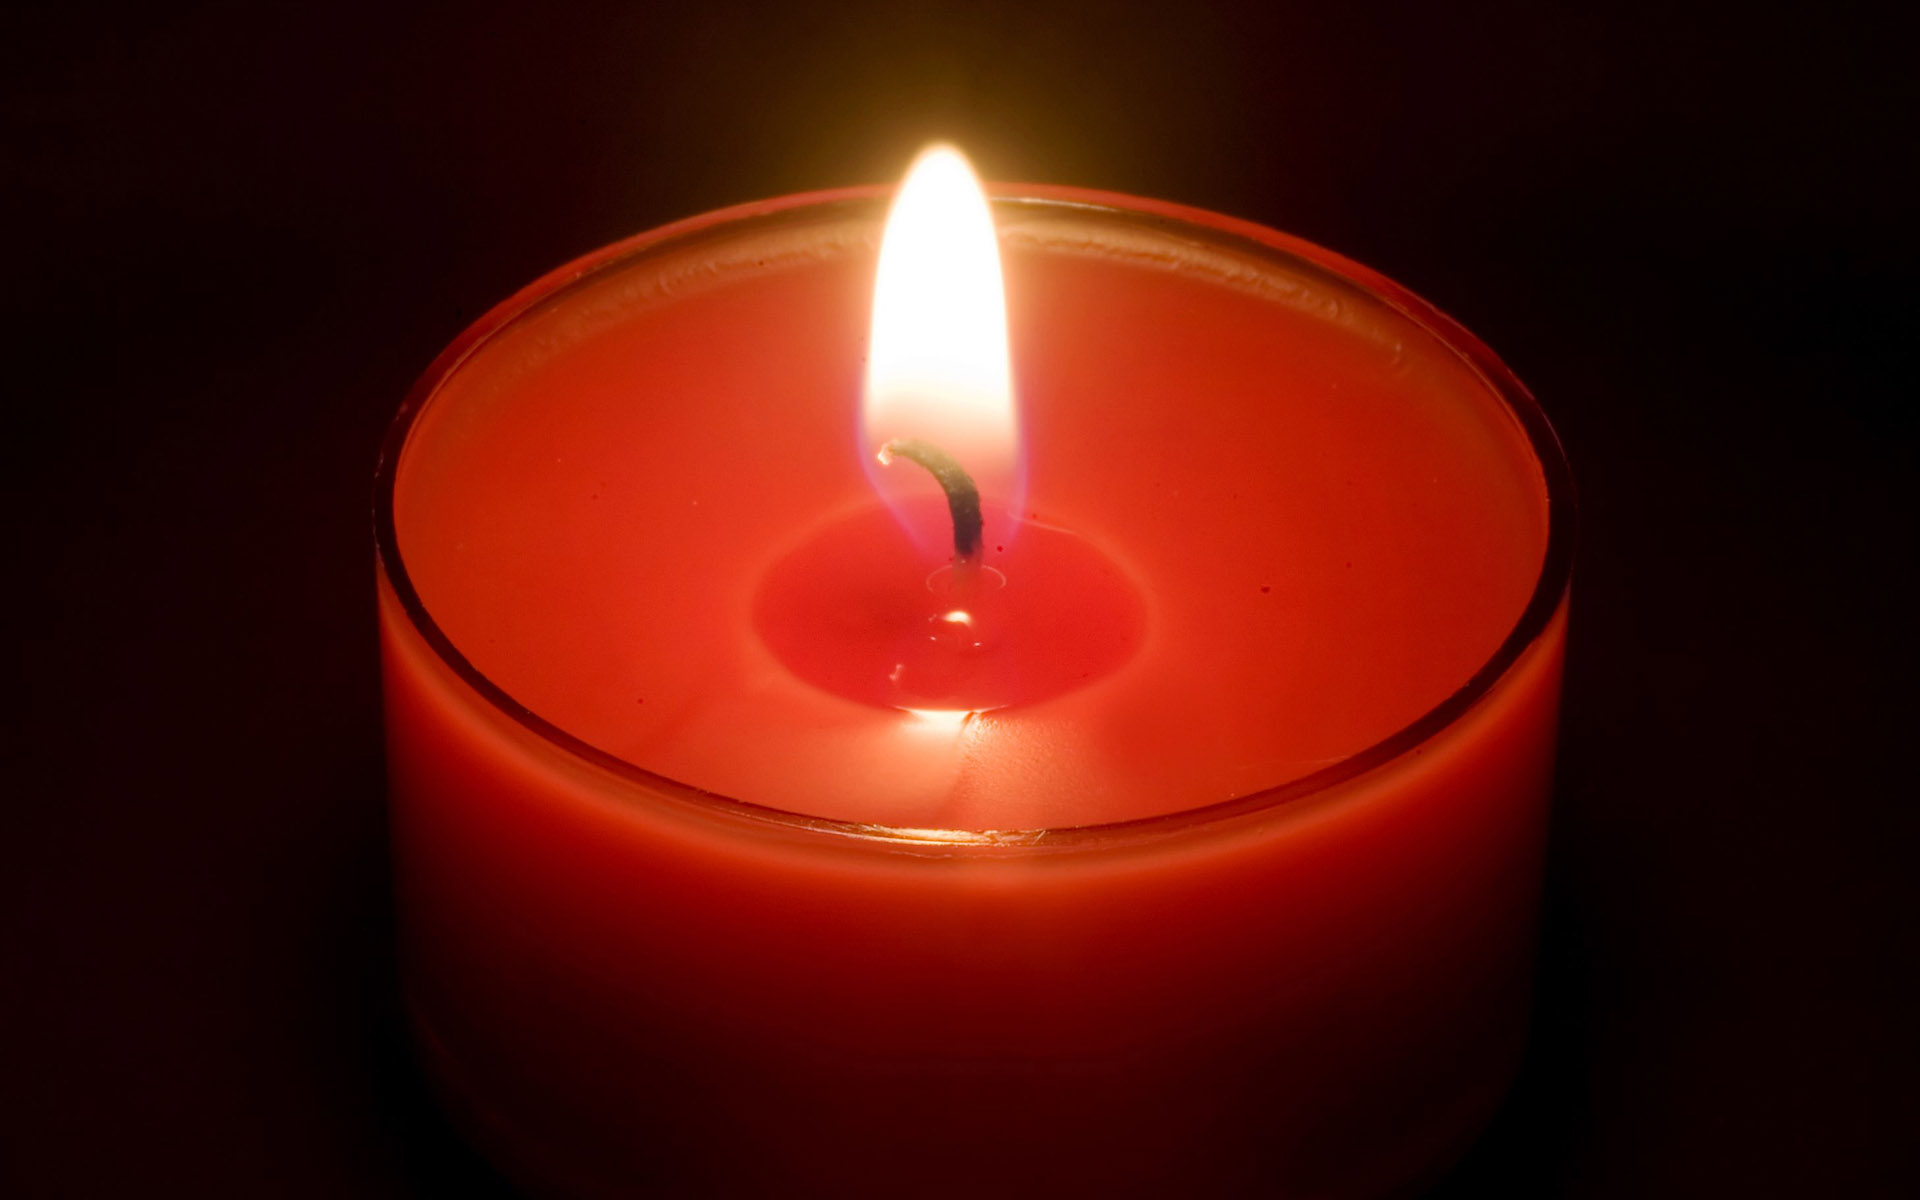 Candle wallpaper 7411